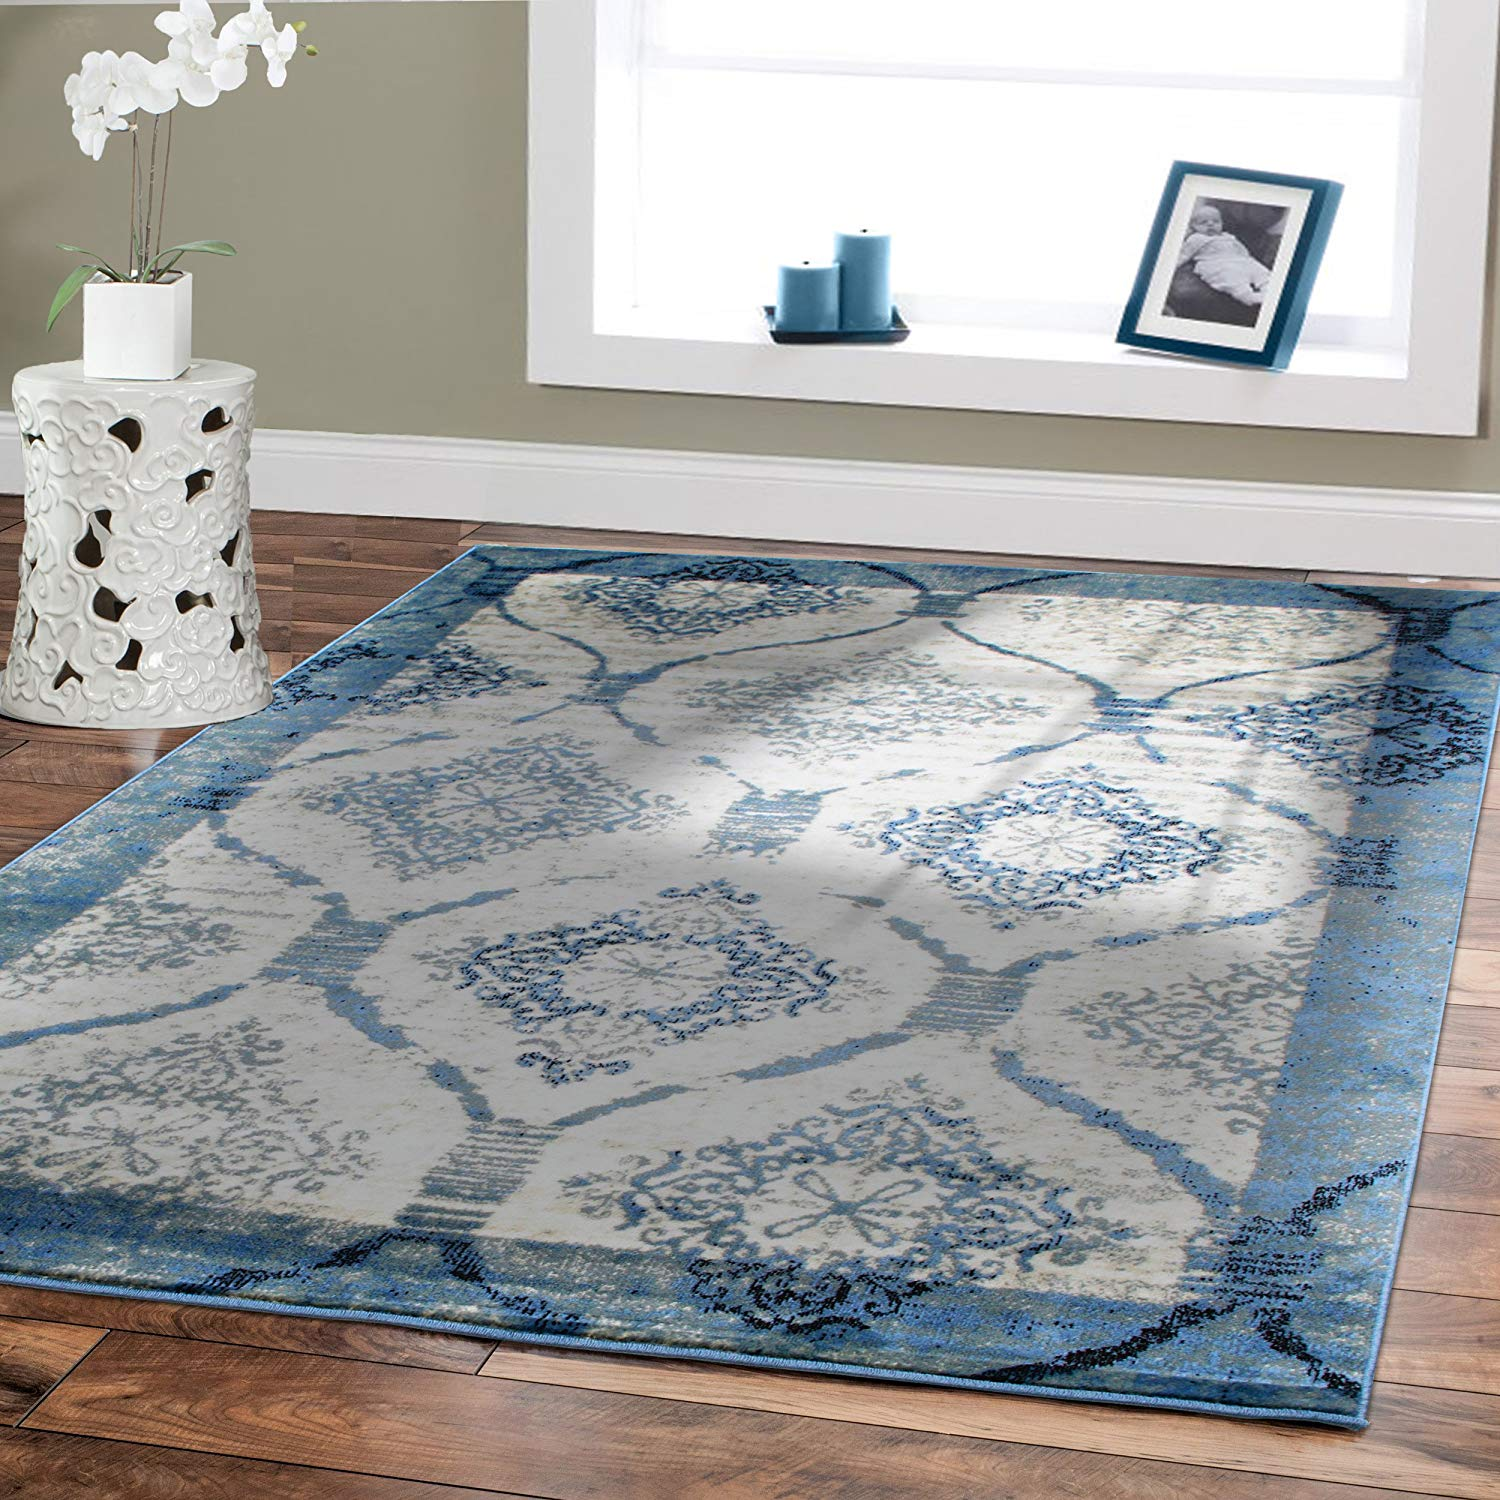 indoor rugs amazon.com: premium 8x11 rug blue modern rugs for living room blues cream IYEDMFU